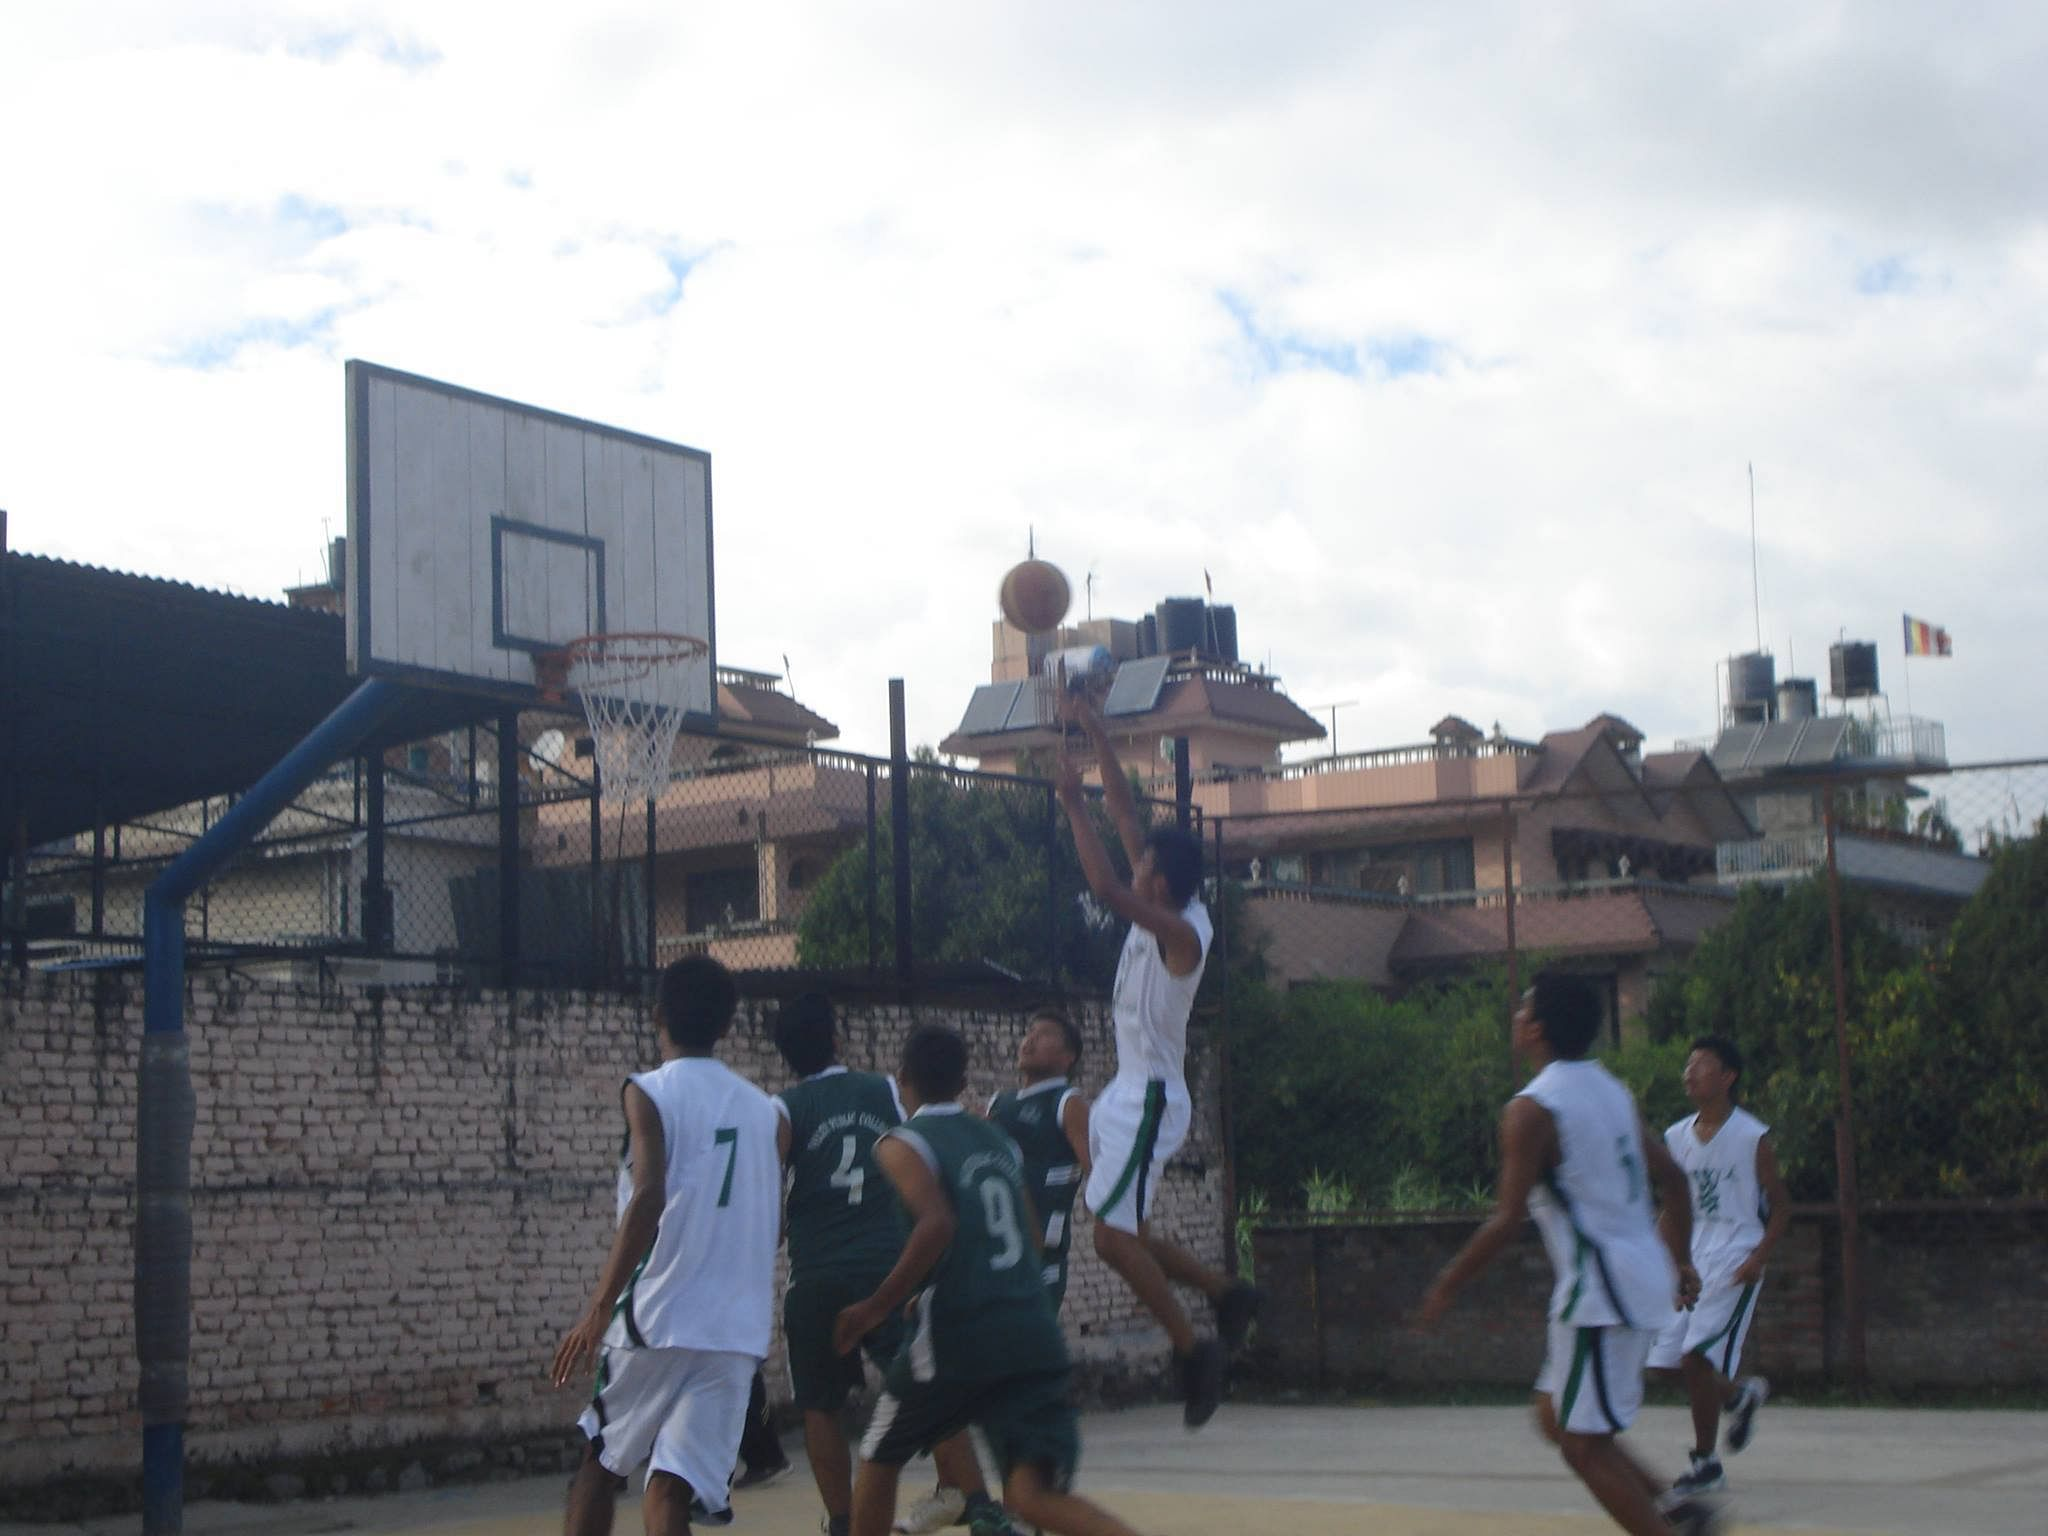 National basketball league: Ludhiana college reaches boys' final